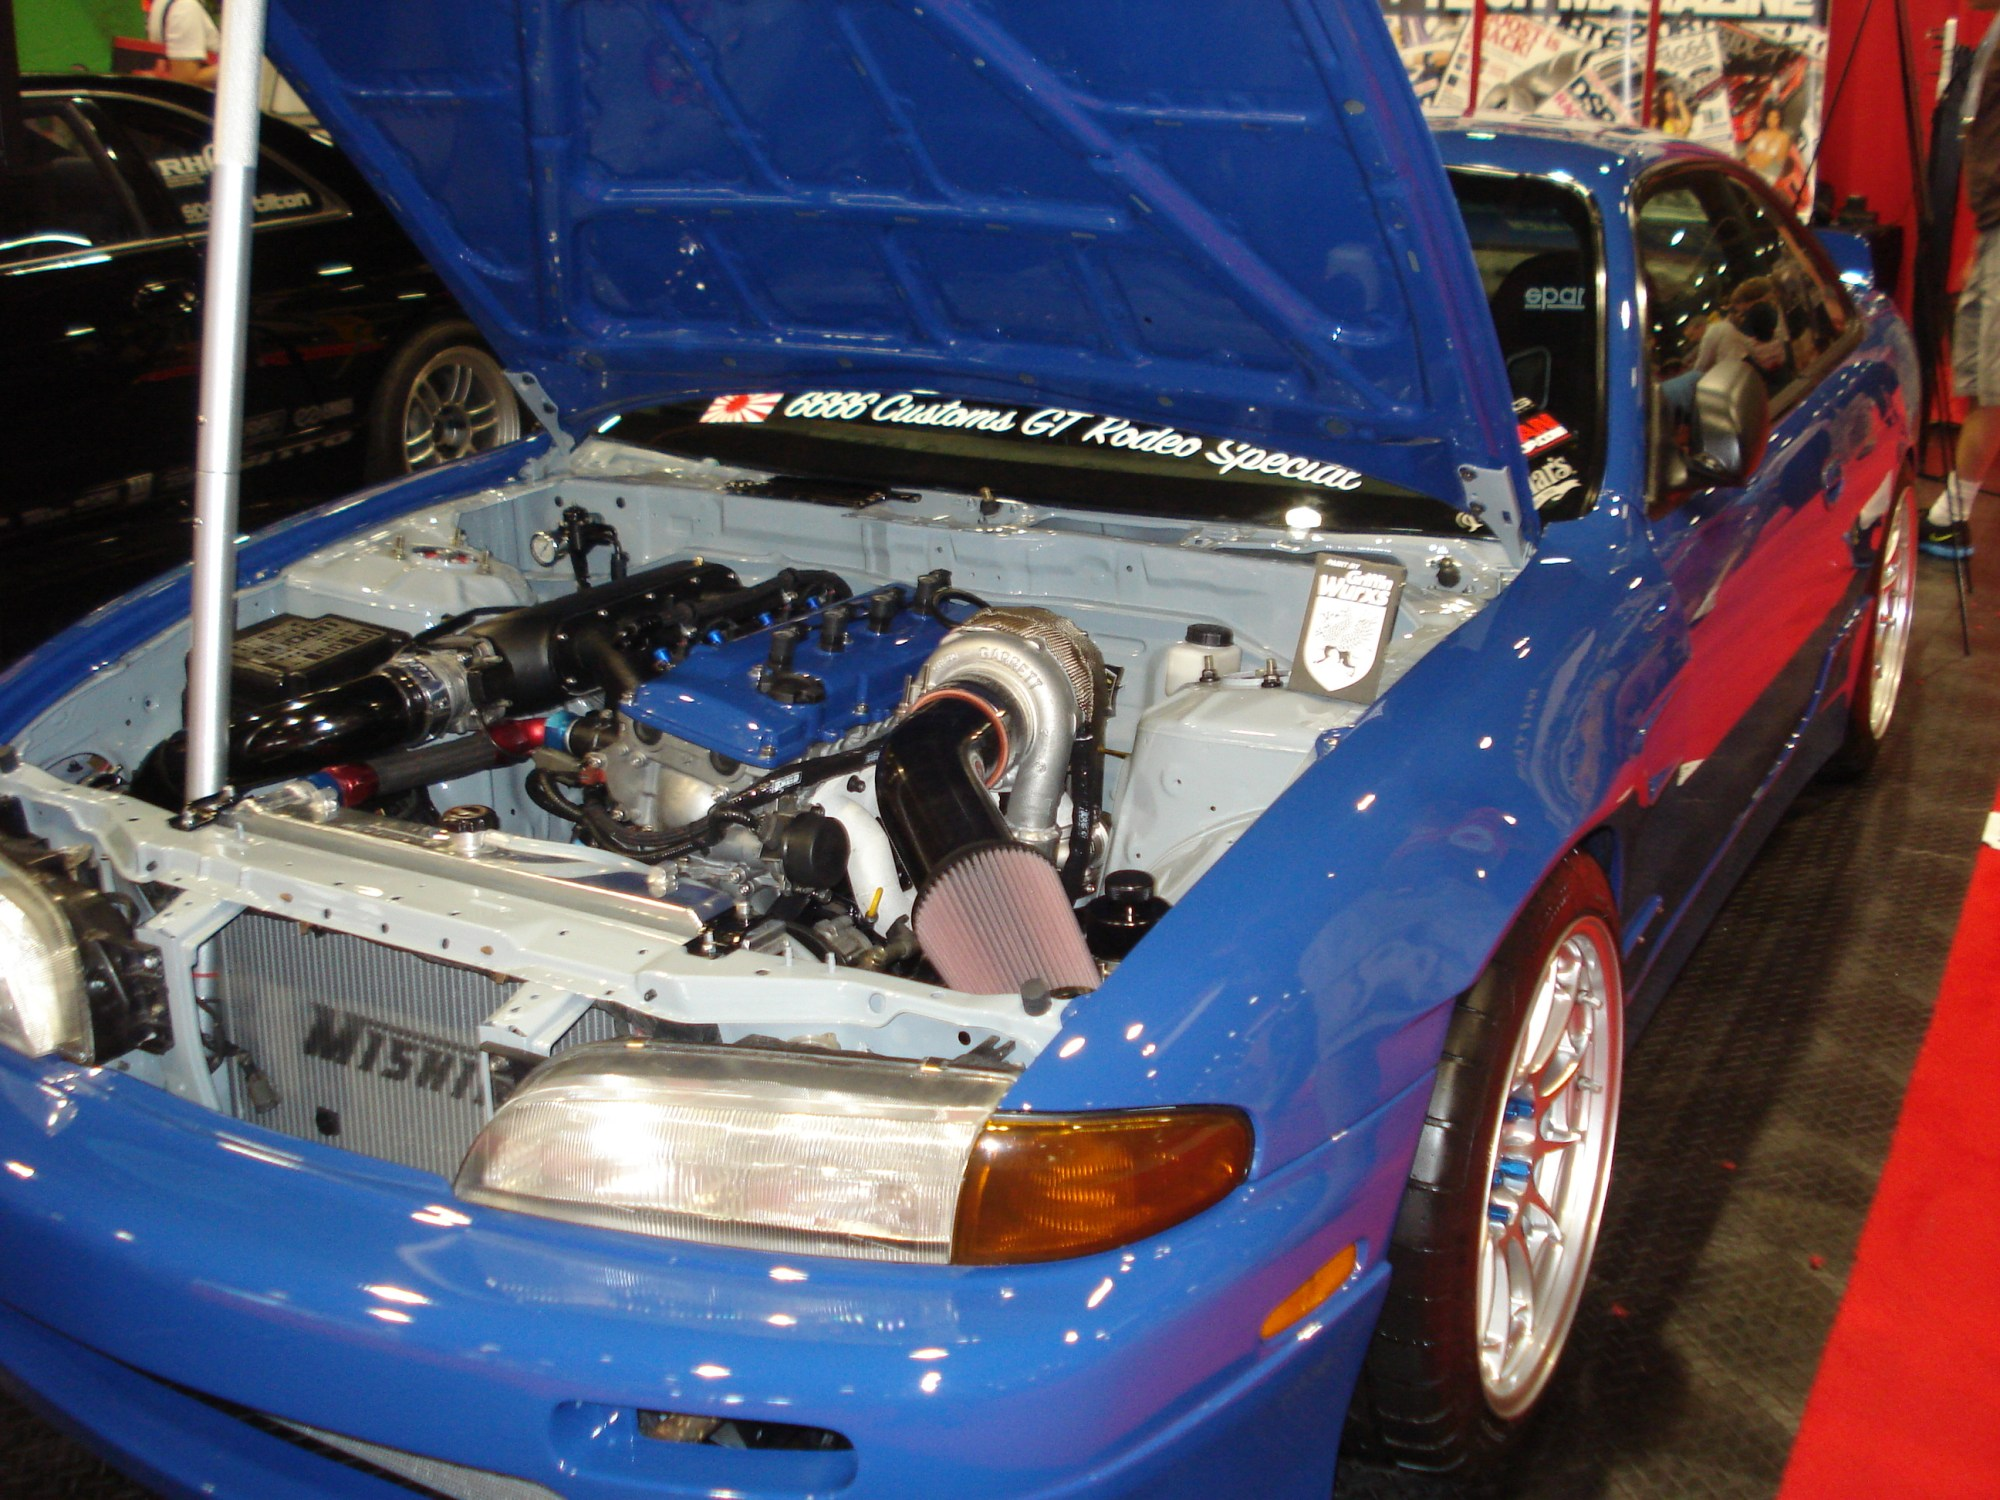 hight resolution of the the d sport mag s14 240sx was also at the show i will have to wait to see what engine choice was better the ka or sr